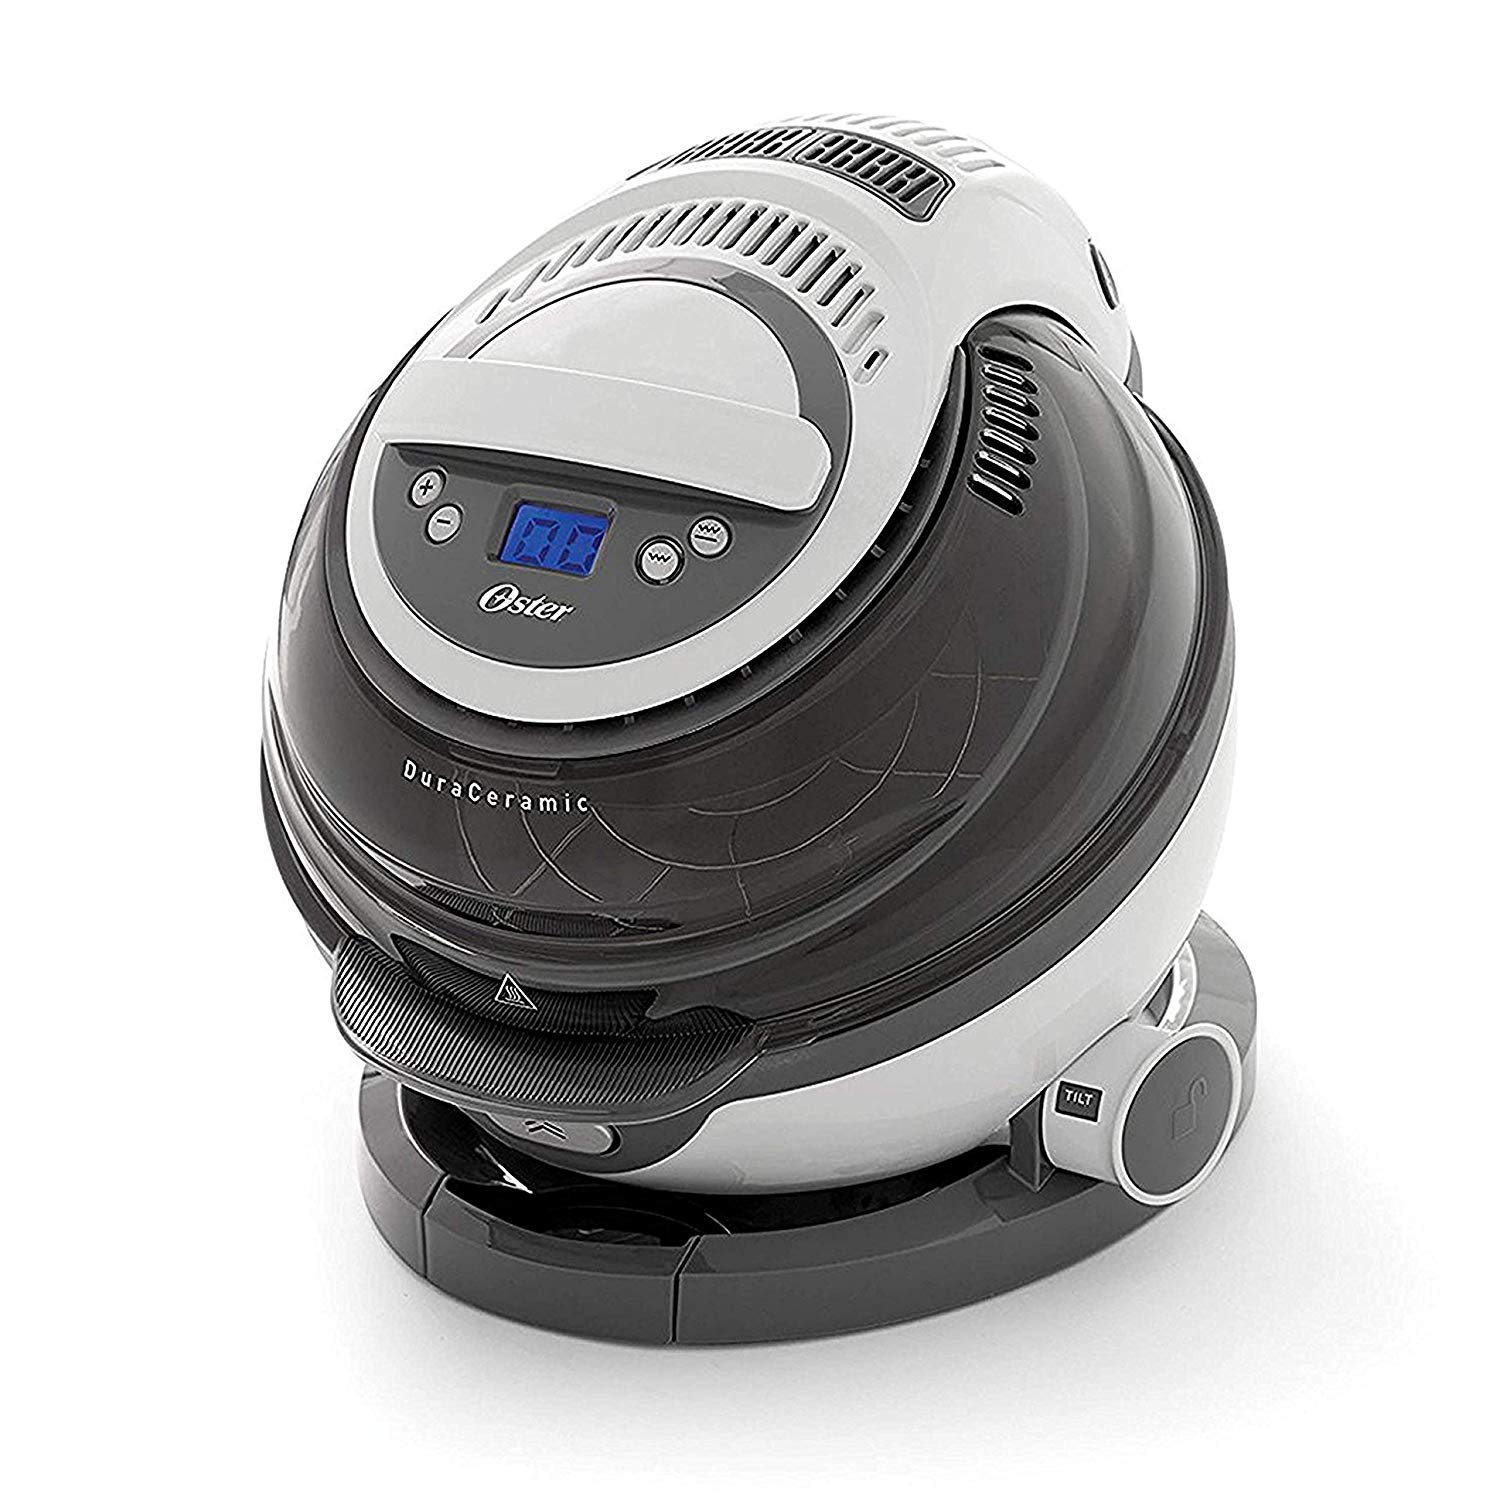 Oster Dura Ceramic Air Fryer